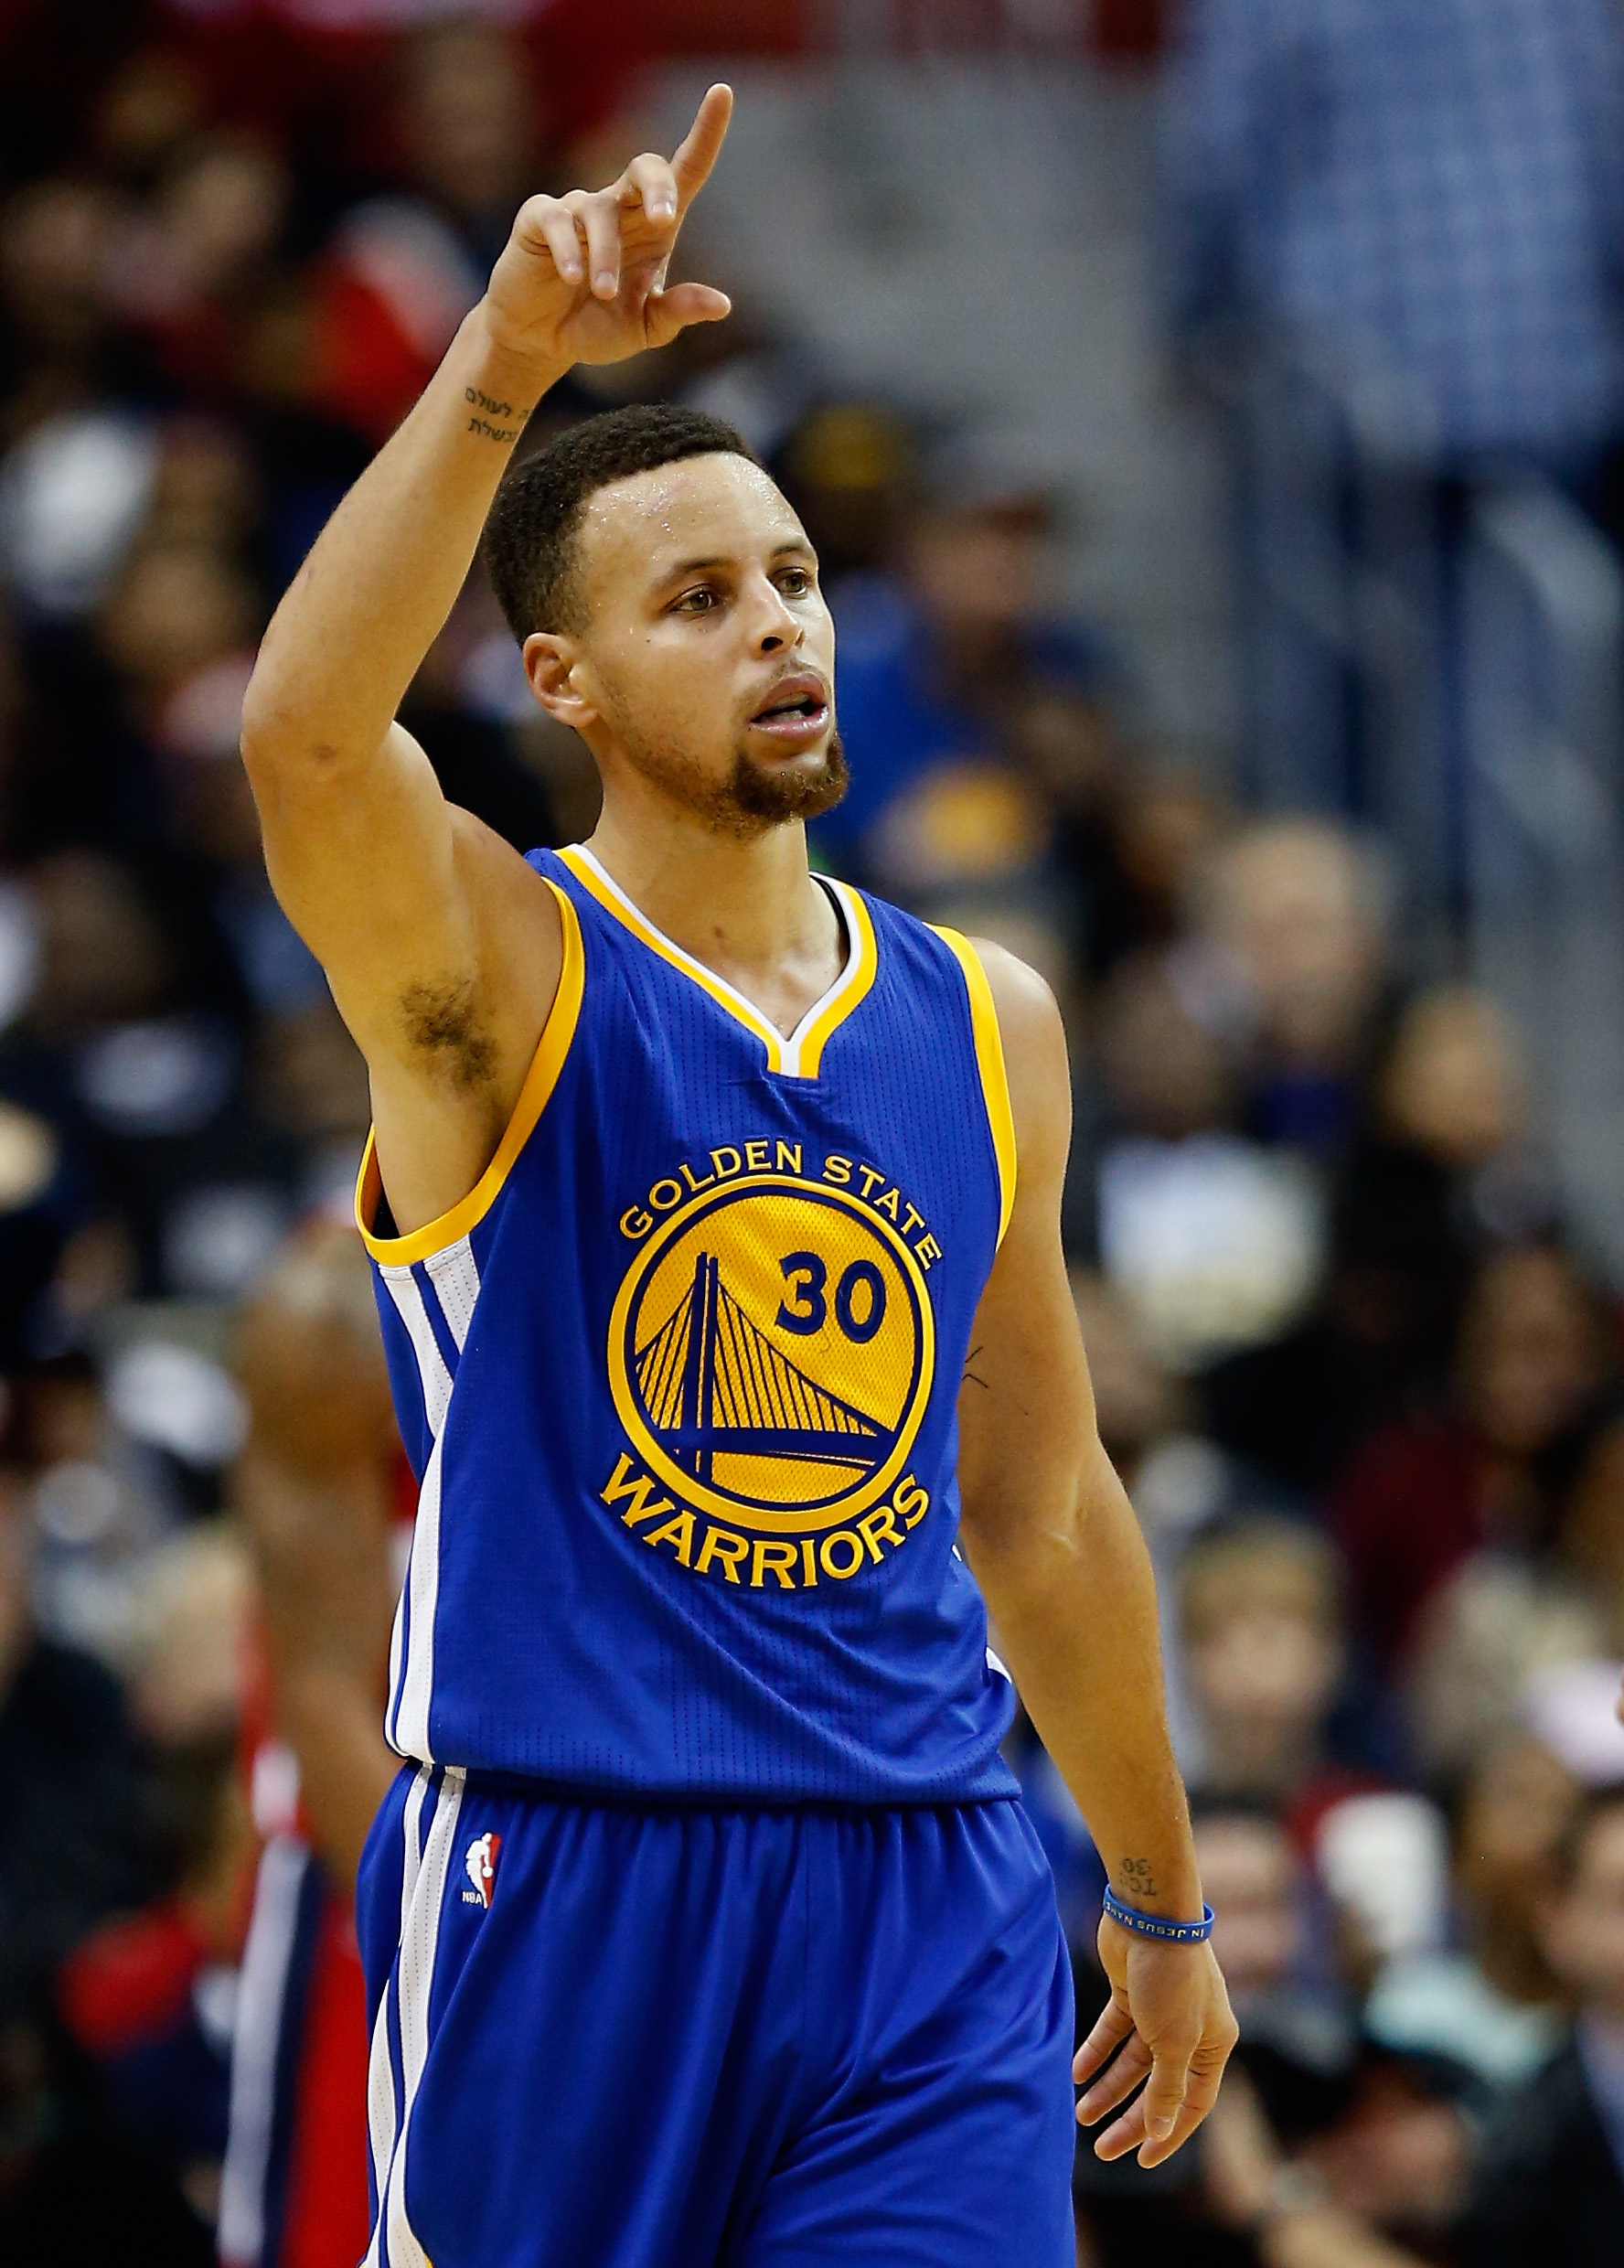 WASHINGTON, DC - FEBRUARY 03:  Stephen Curry #30 of the Golden State Warriors celebrates after scoring in the foiurth quarter against the Washington Wizards at Verizon Center on February 3, 2016 in Washington, DC. The Warriors defeated the Wizards 134 to